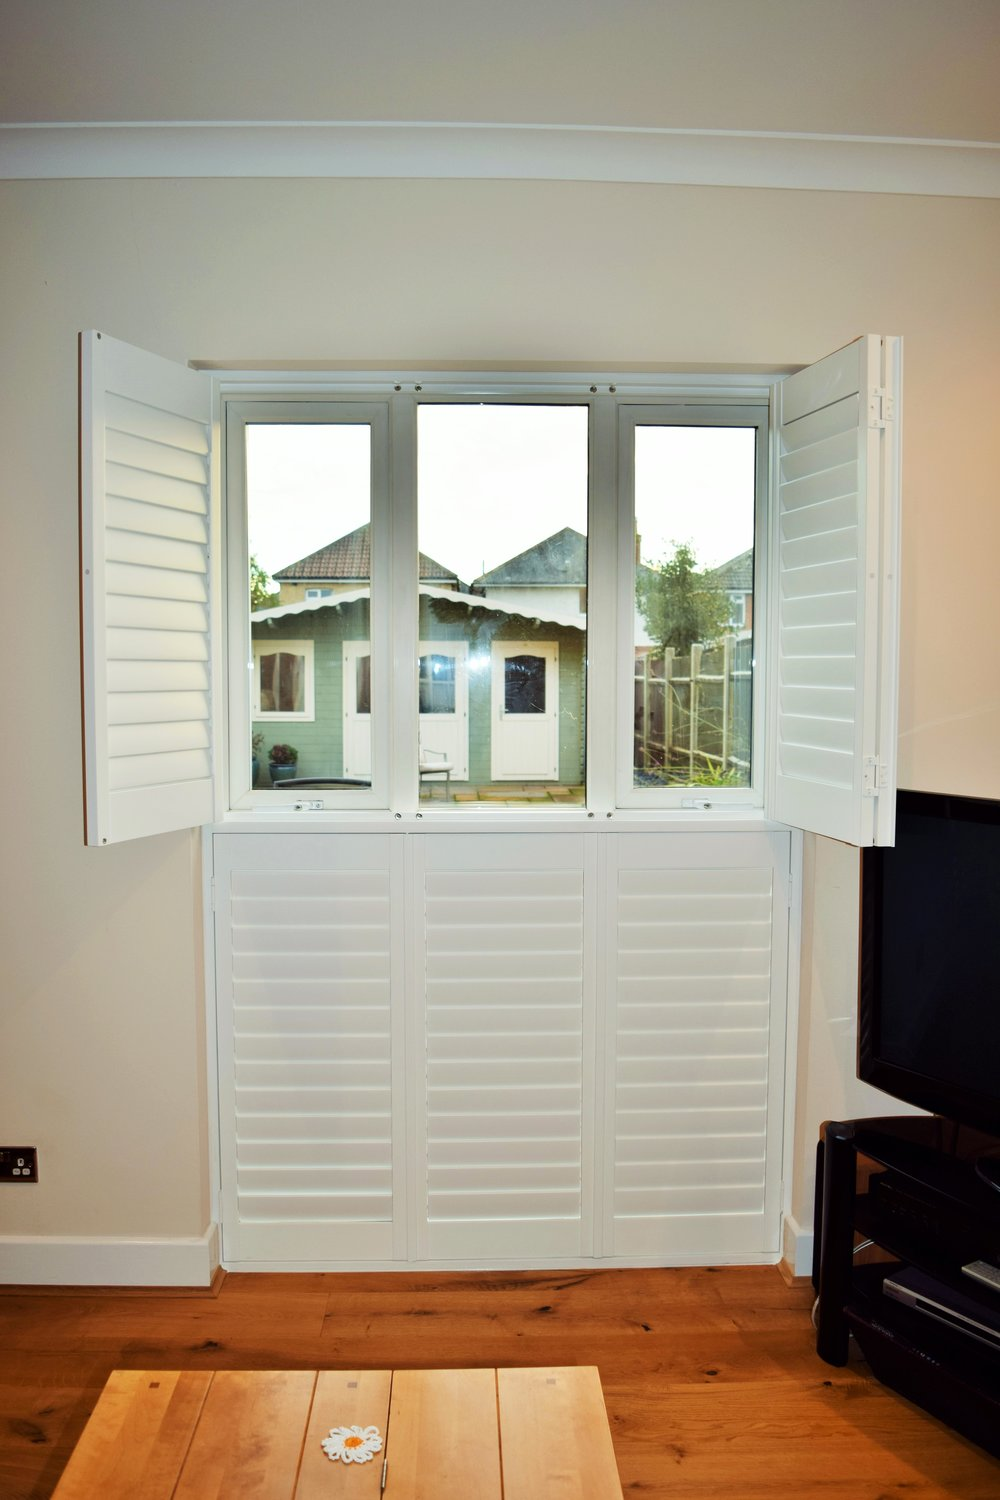 Tier on tier patio door shutters Bournemouth